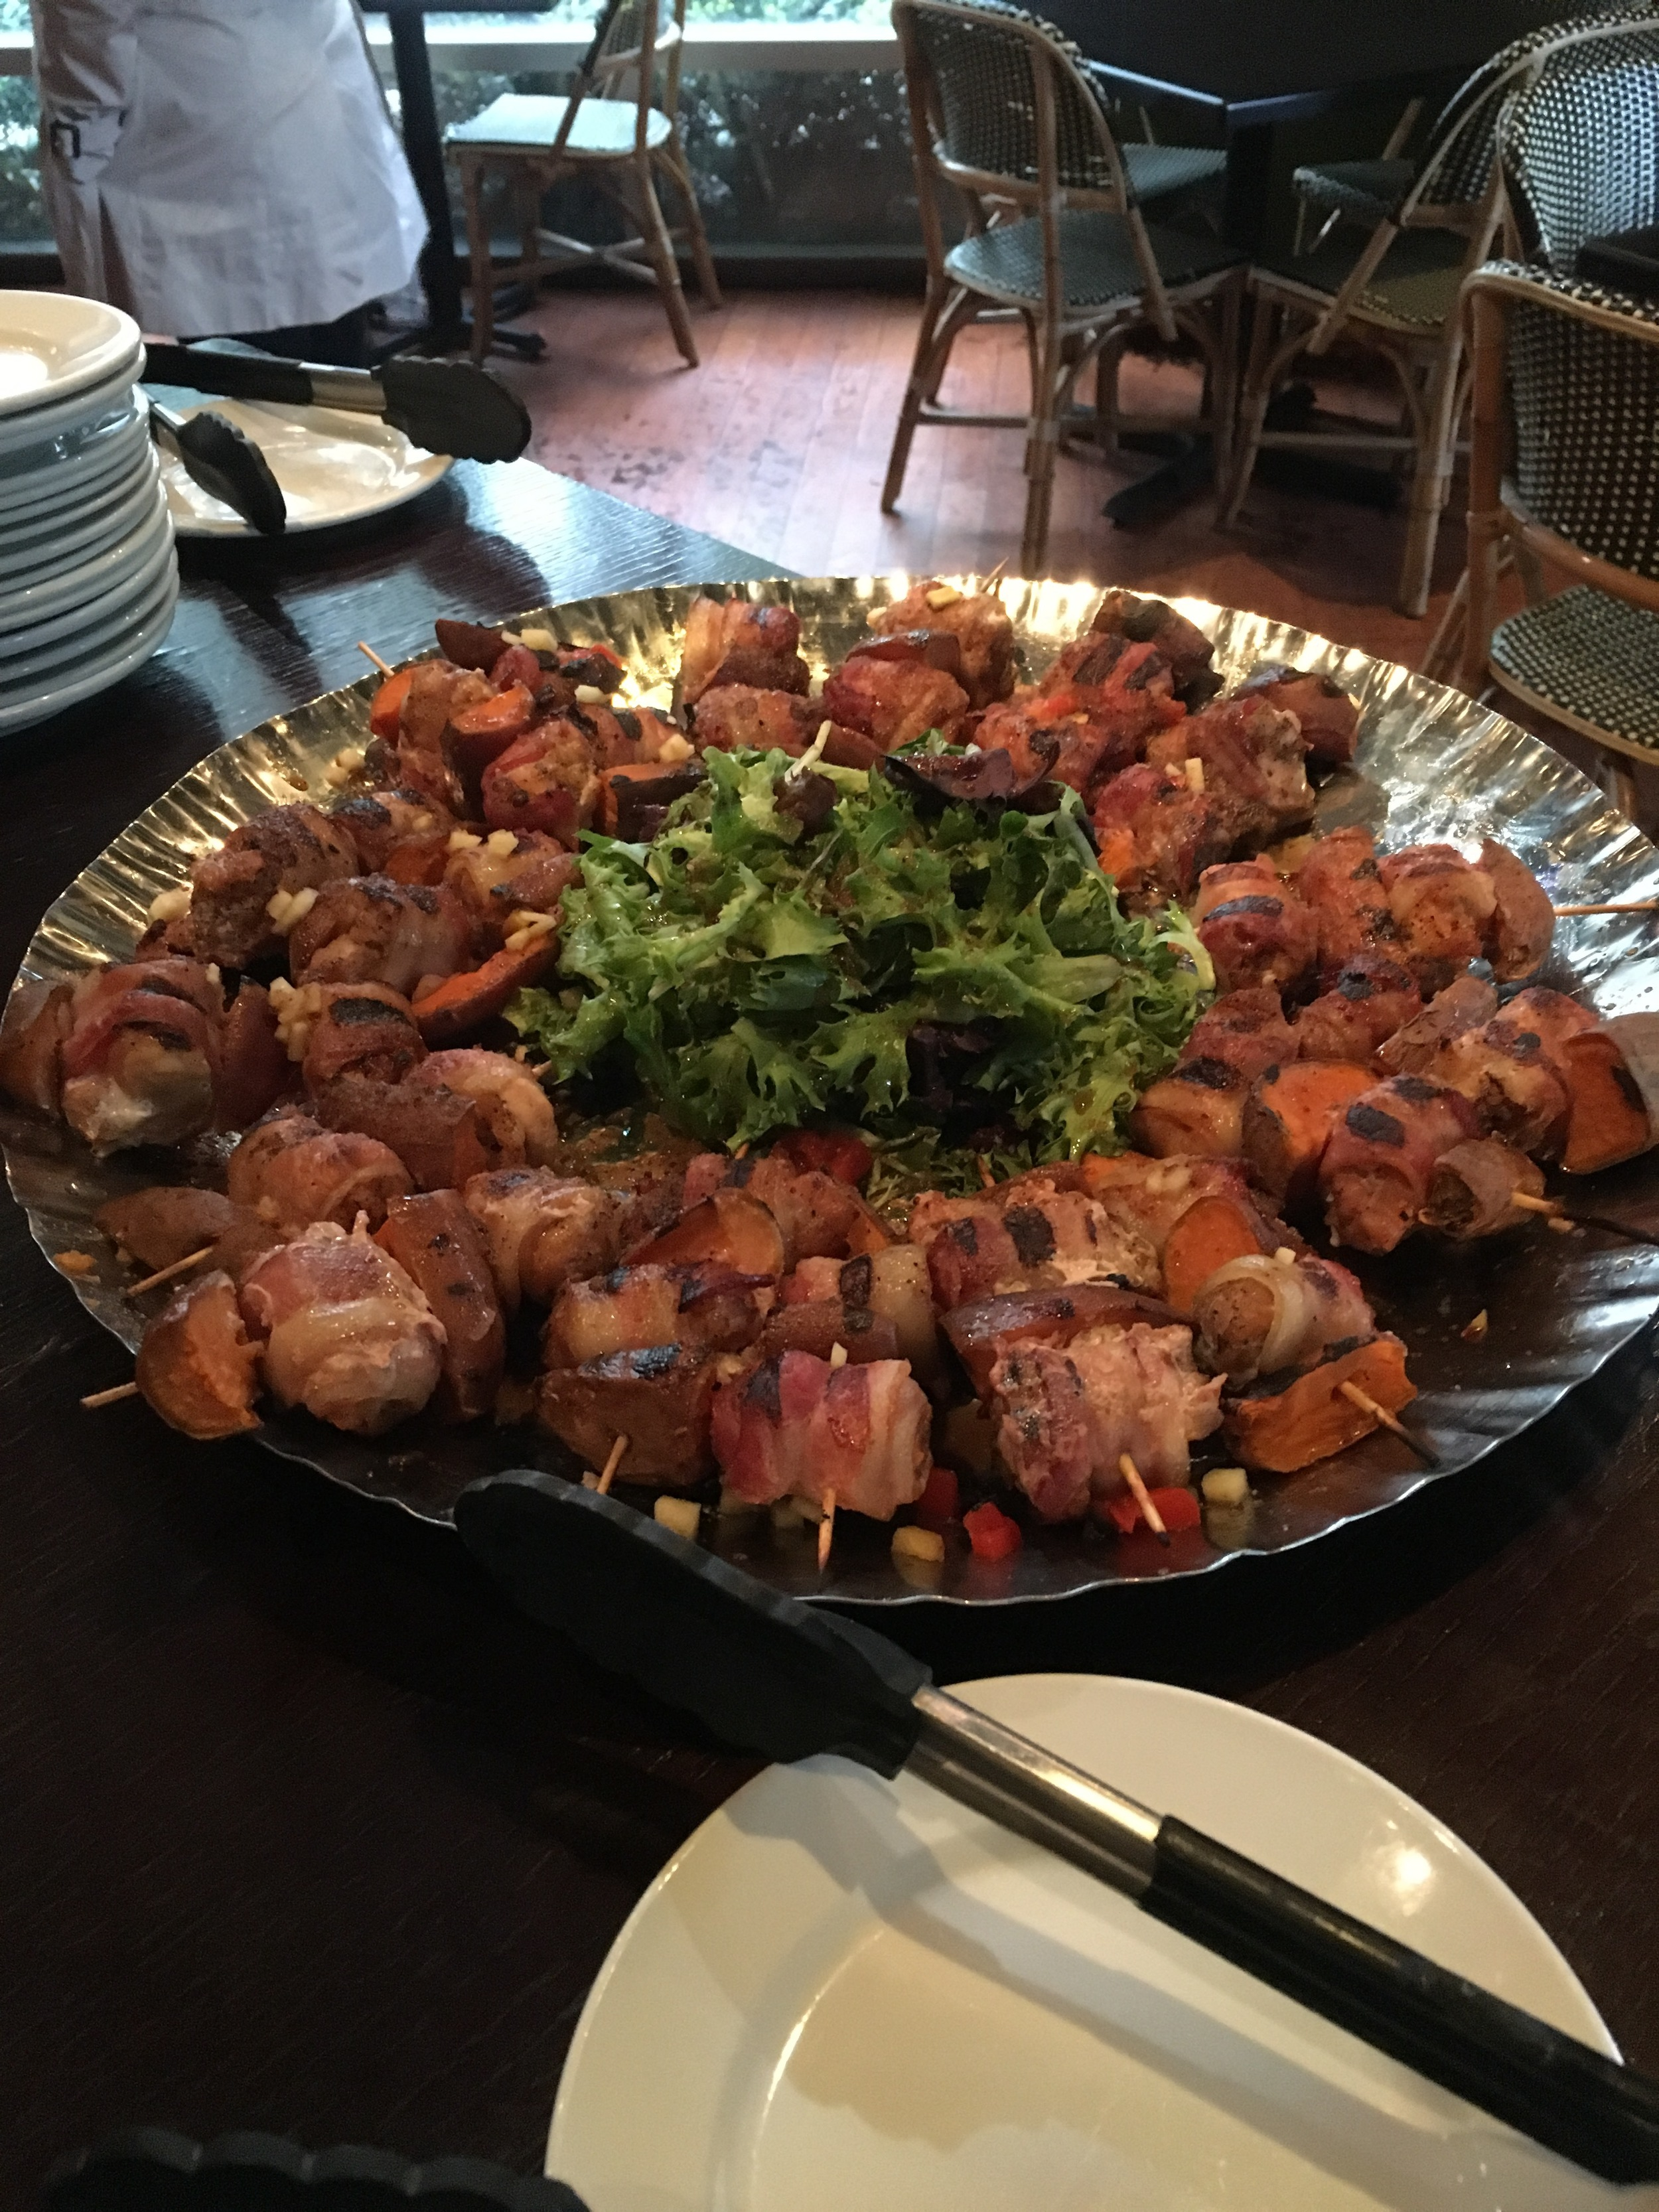 Bacon Wrapped Alligator Tails with Carolina Mustard BBQ Sauce